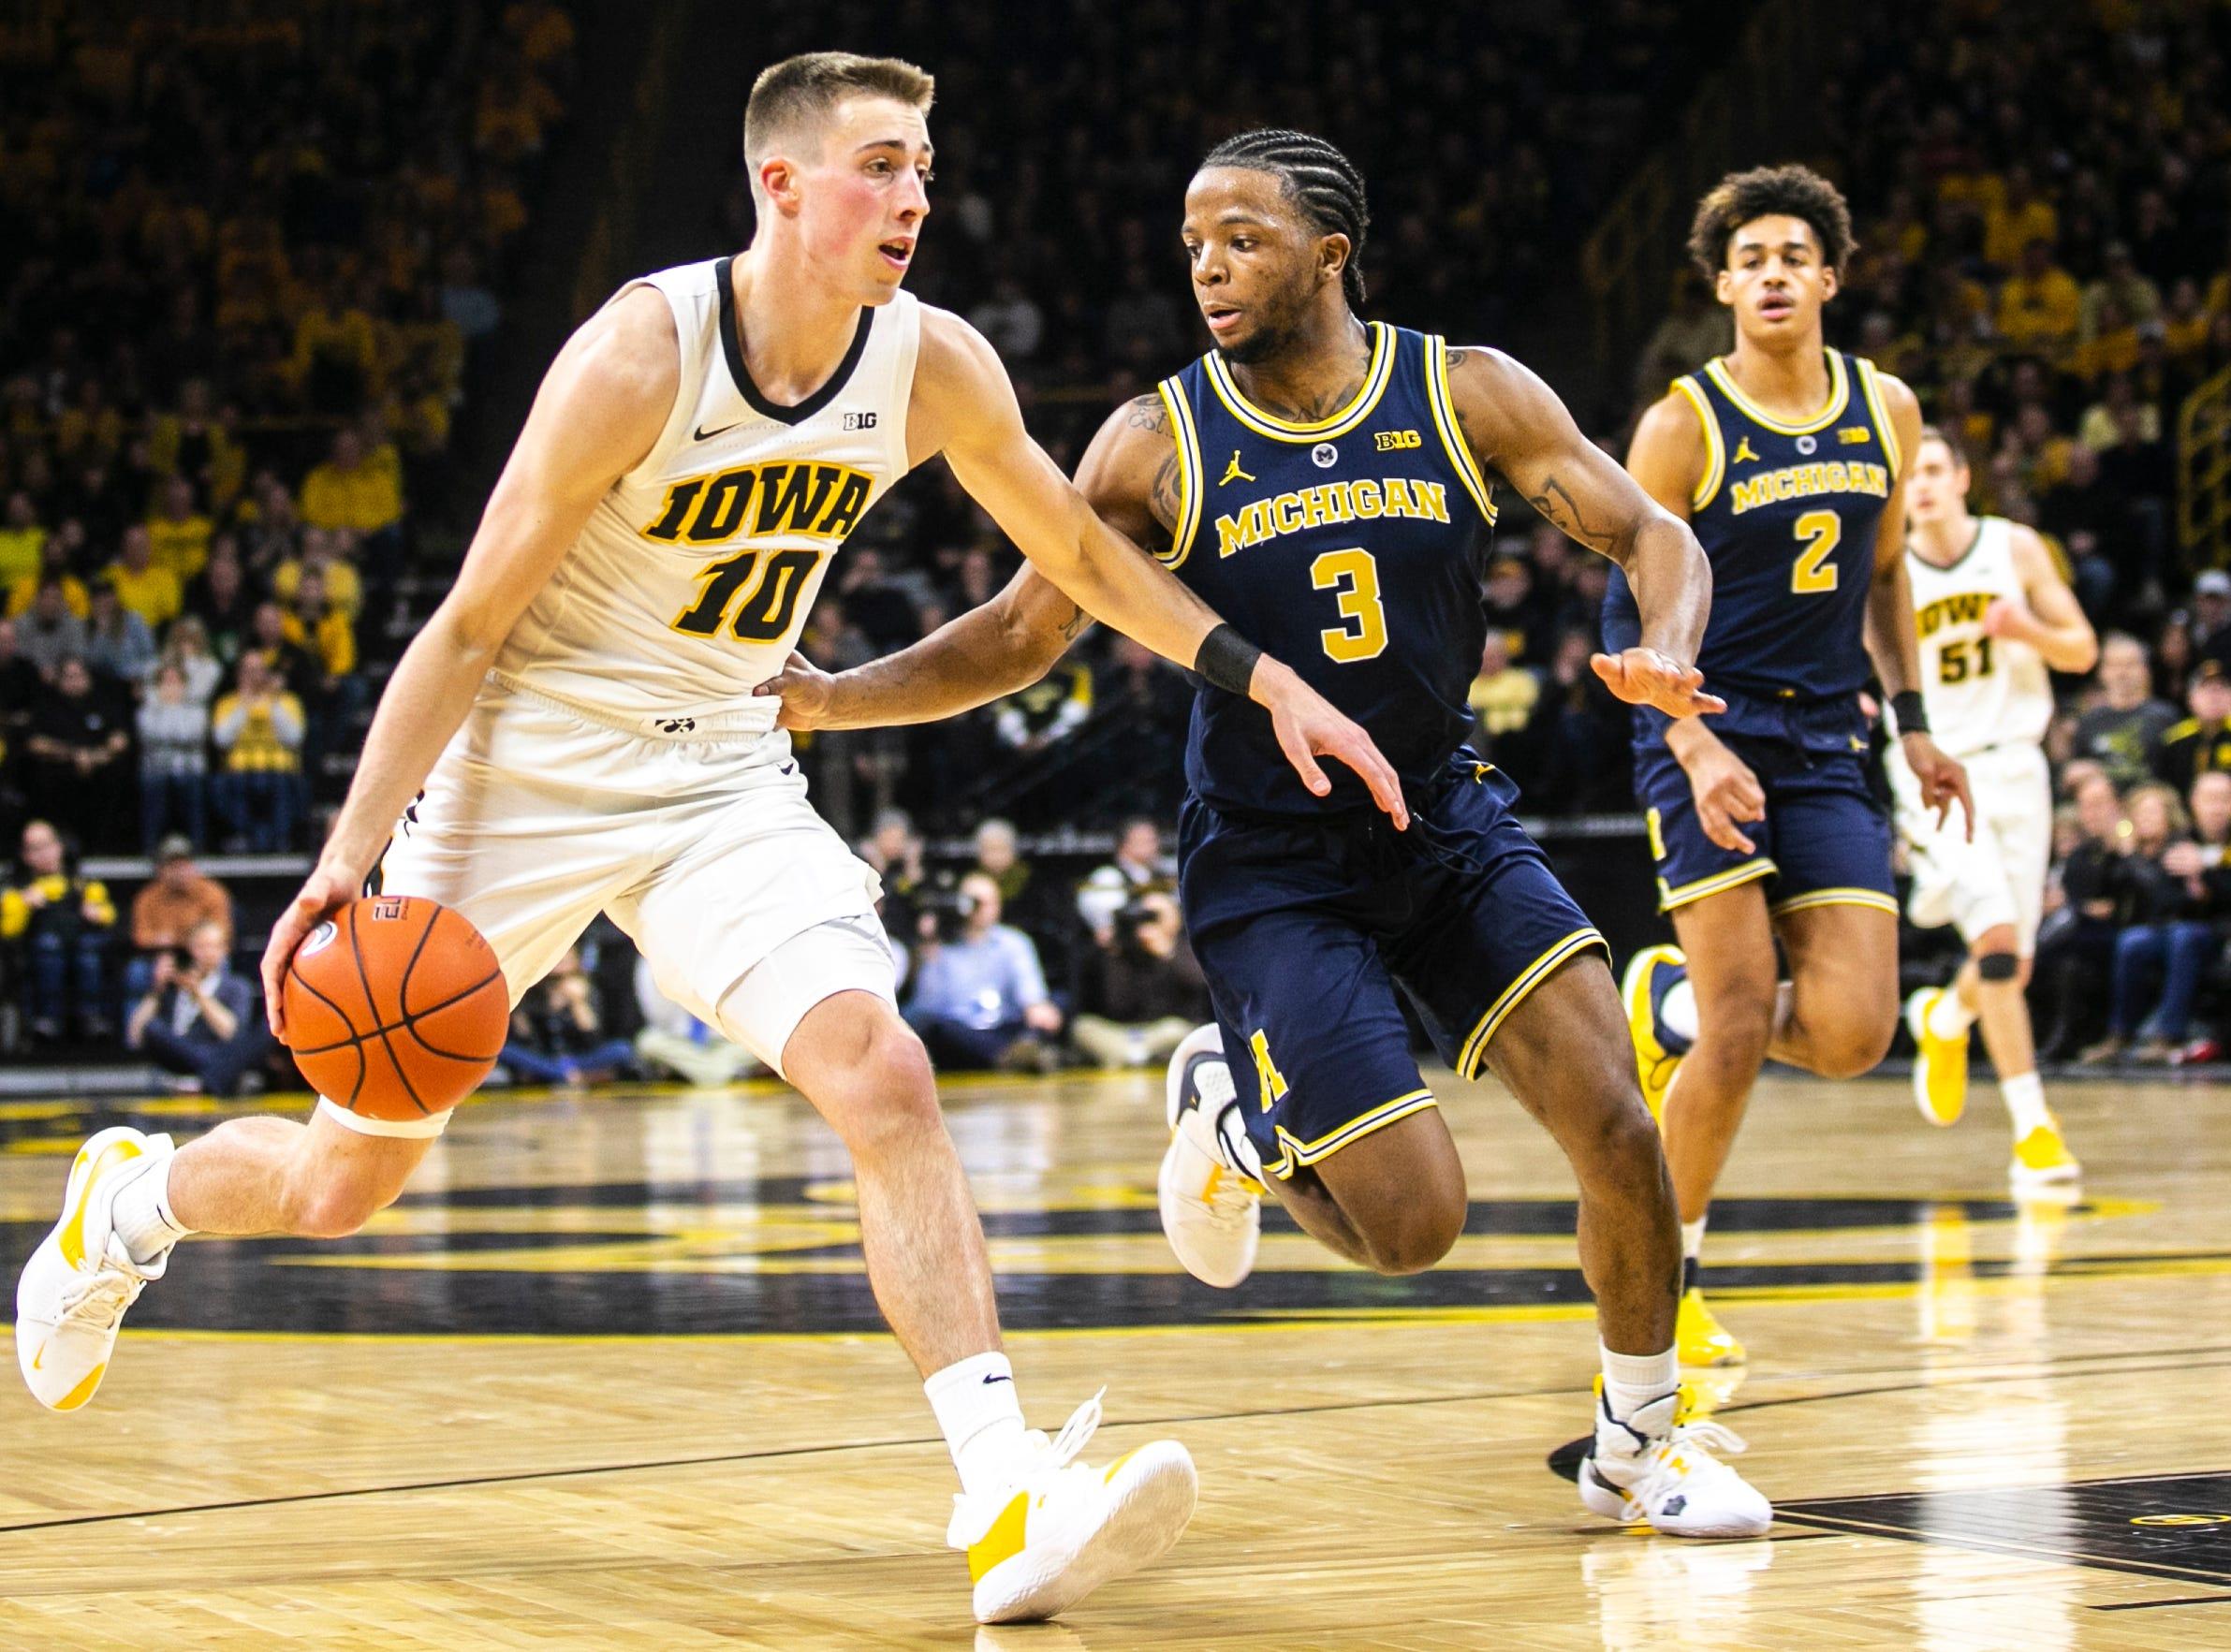 Iowa guard Joe Wieskamp (10) drives to the basket while Michigan guard Zavier Simpson (3) defends during a NCAA Big Ten Conference men's basketball game on Friday, Feb. 1, 2019, at Carver-Hawkeye Arena in Iowa City, Iowa.